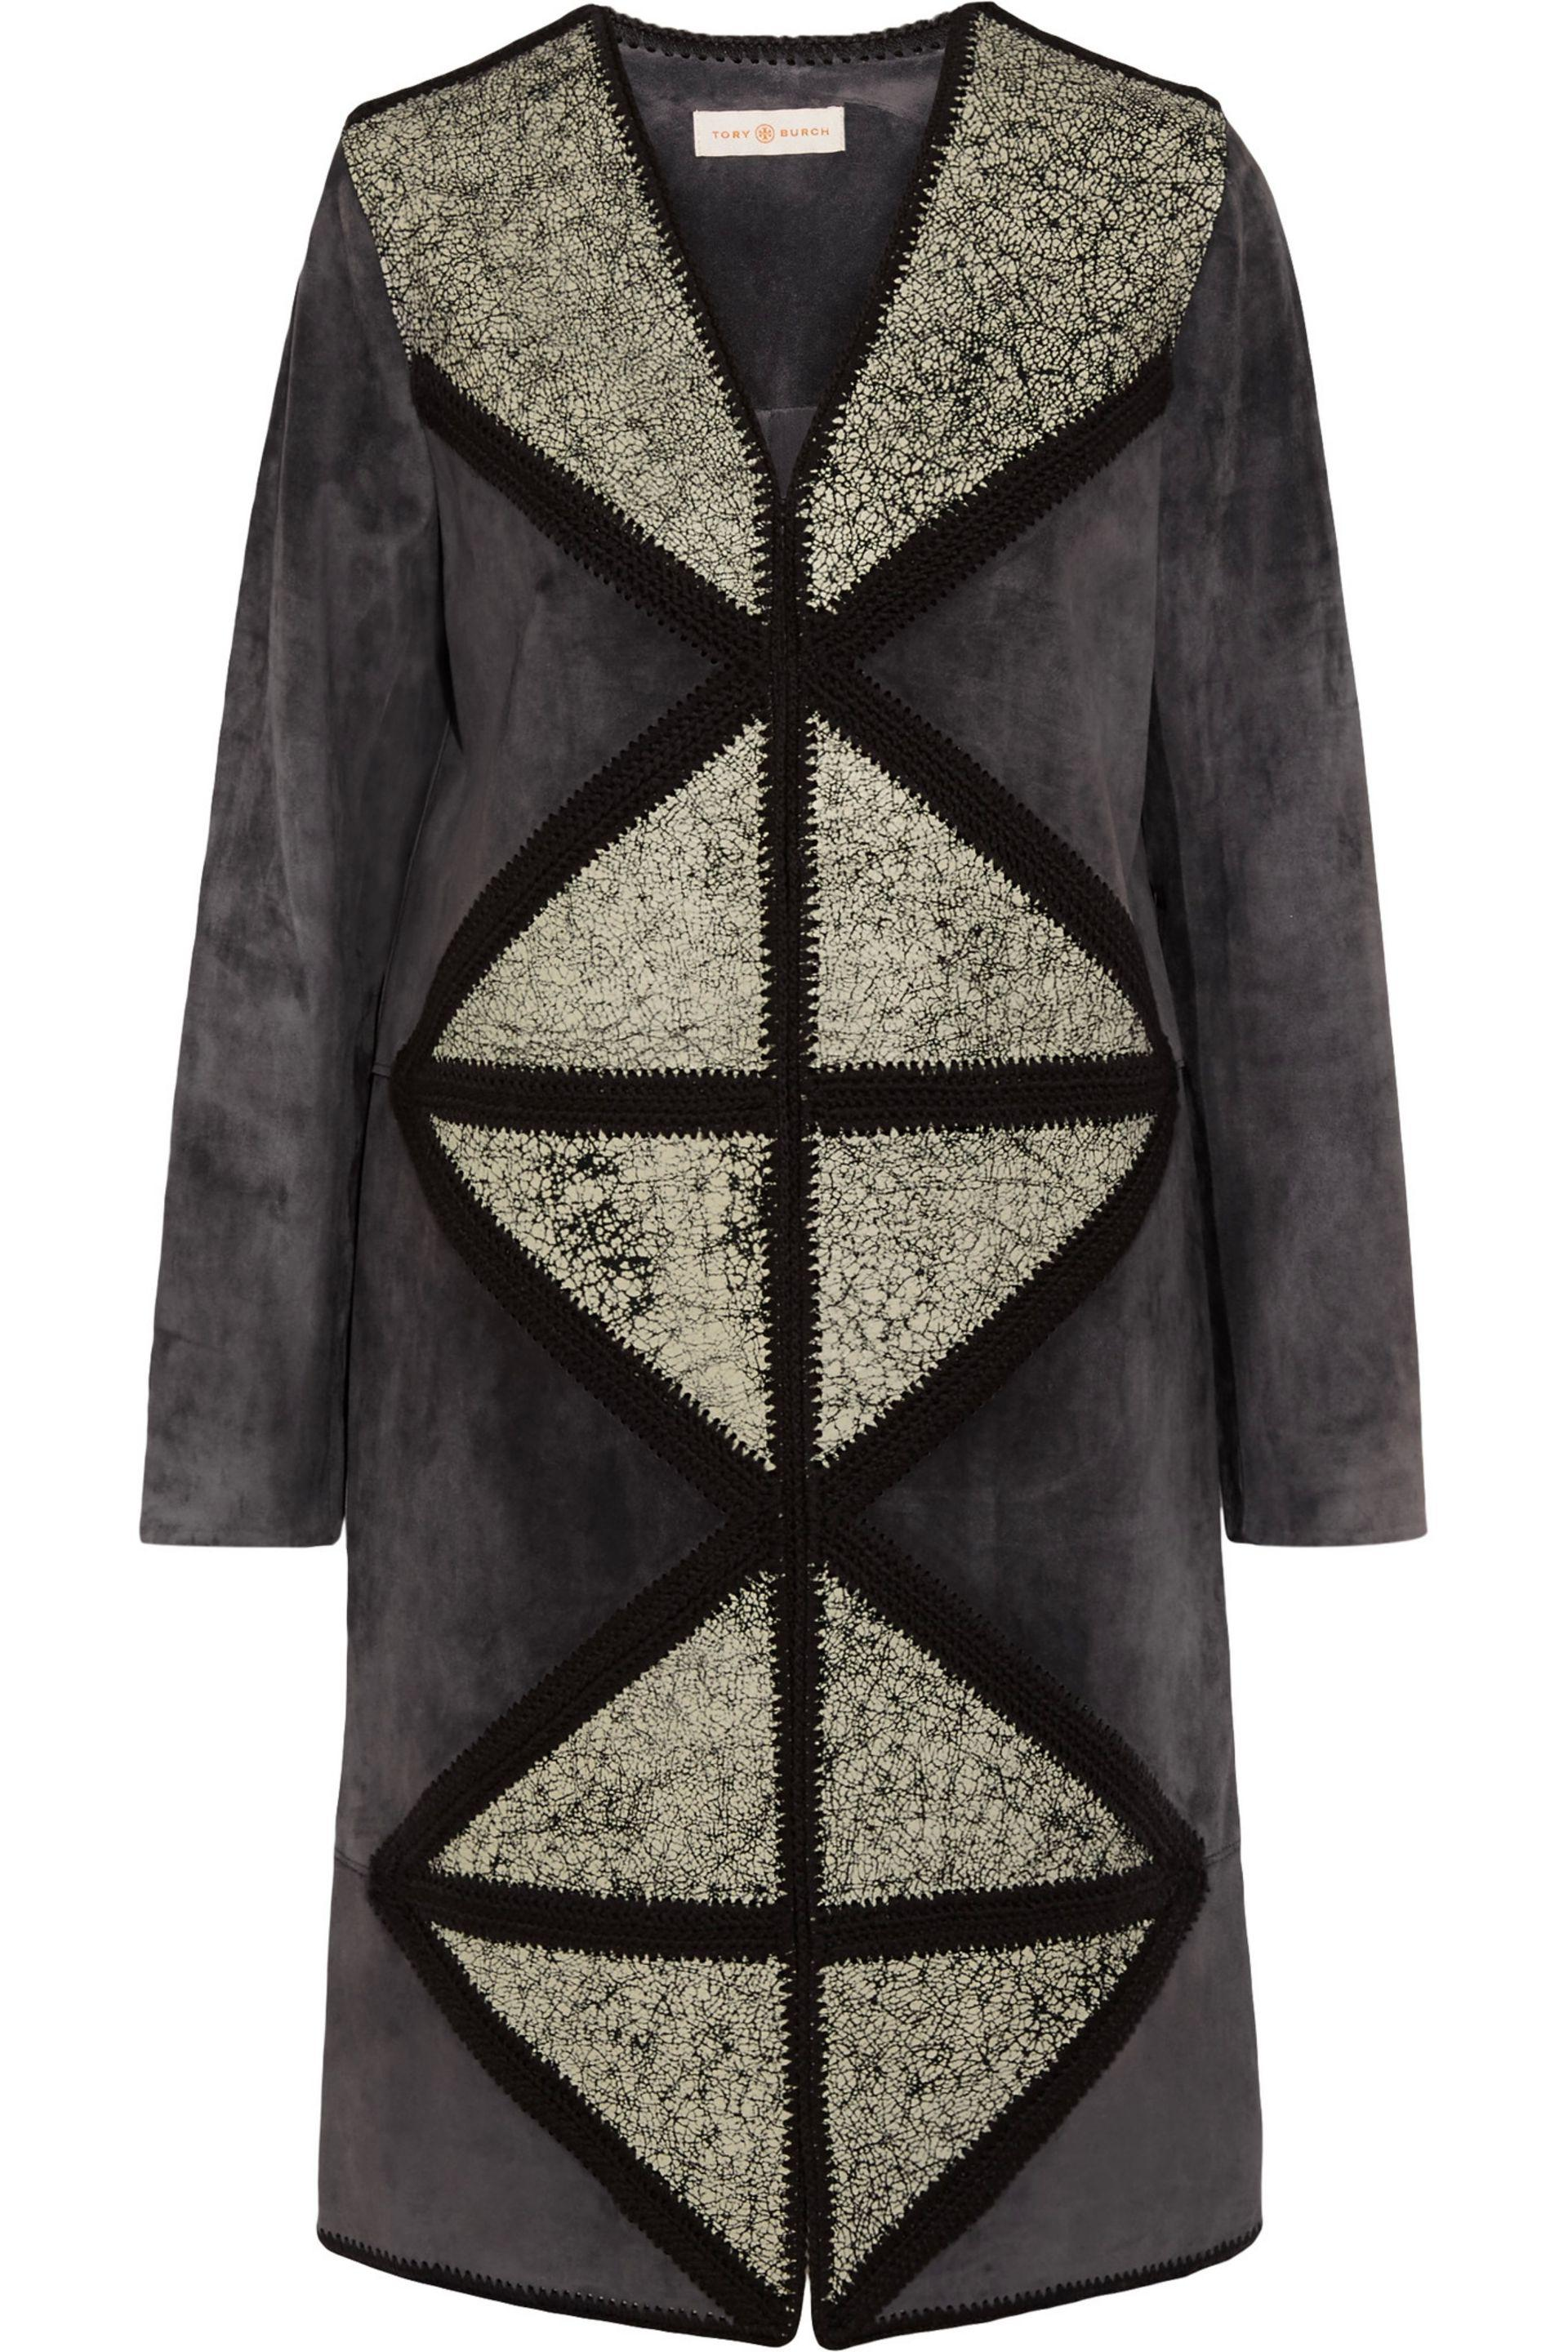 Tory Burch. Women's Cracked Leather-paneled Suede Coat